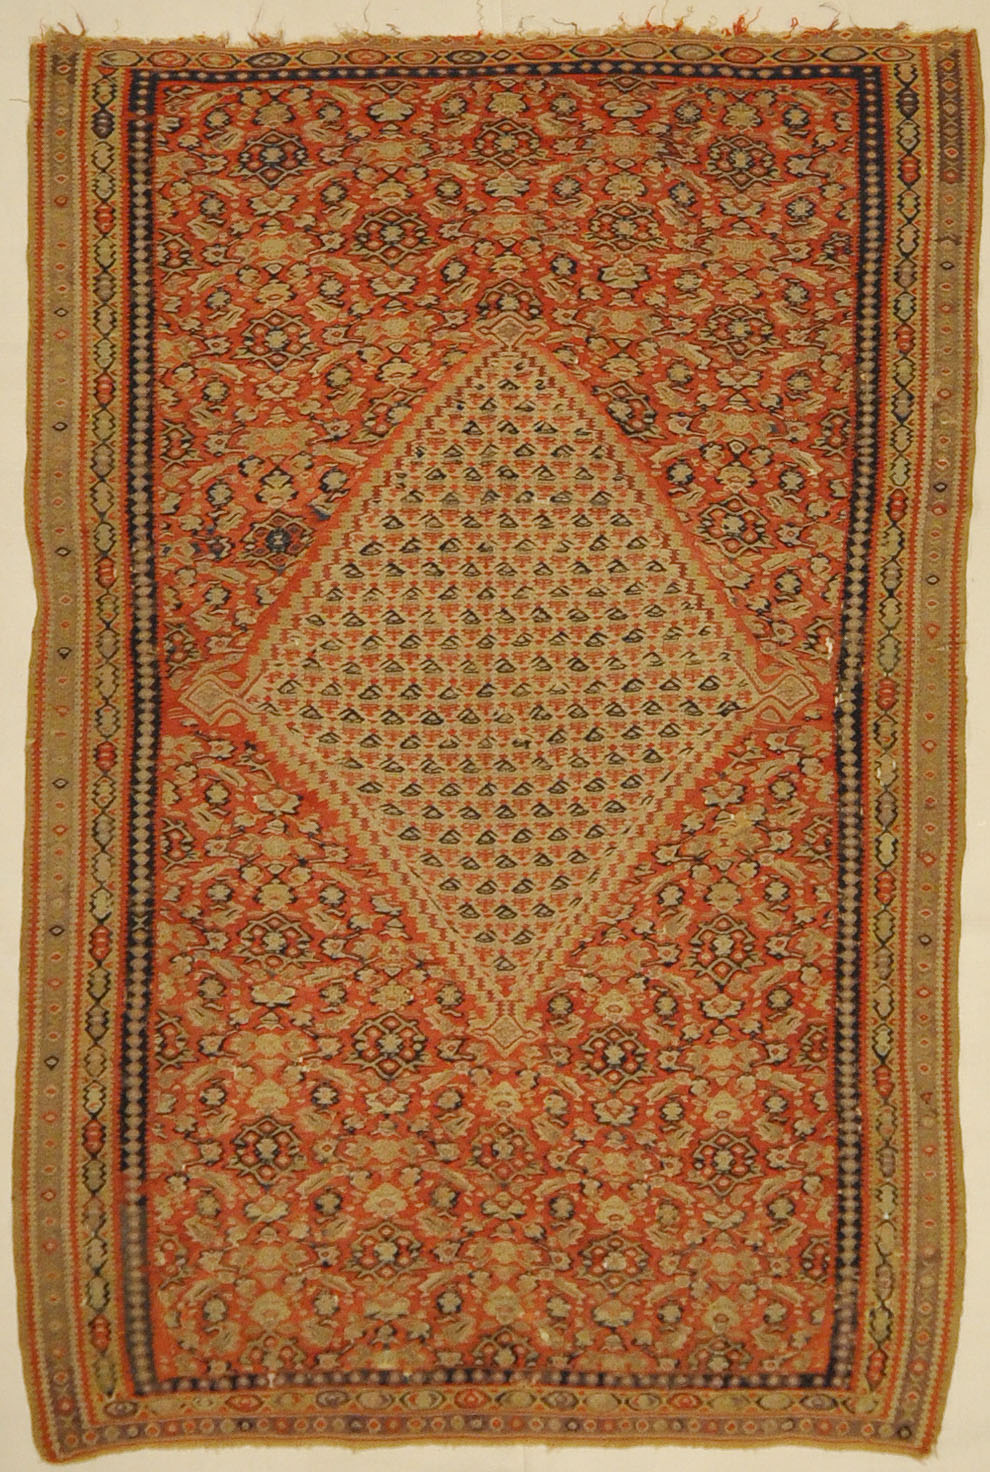 Antique Senneh Second Half of 19th Century. A piece of antique woven carpet art sold by Santa Barbara Design Center Rugs and More Santa Barbara California